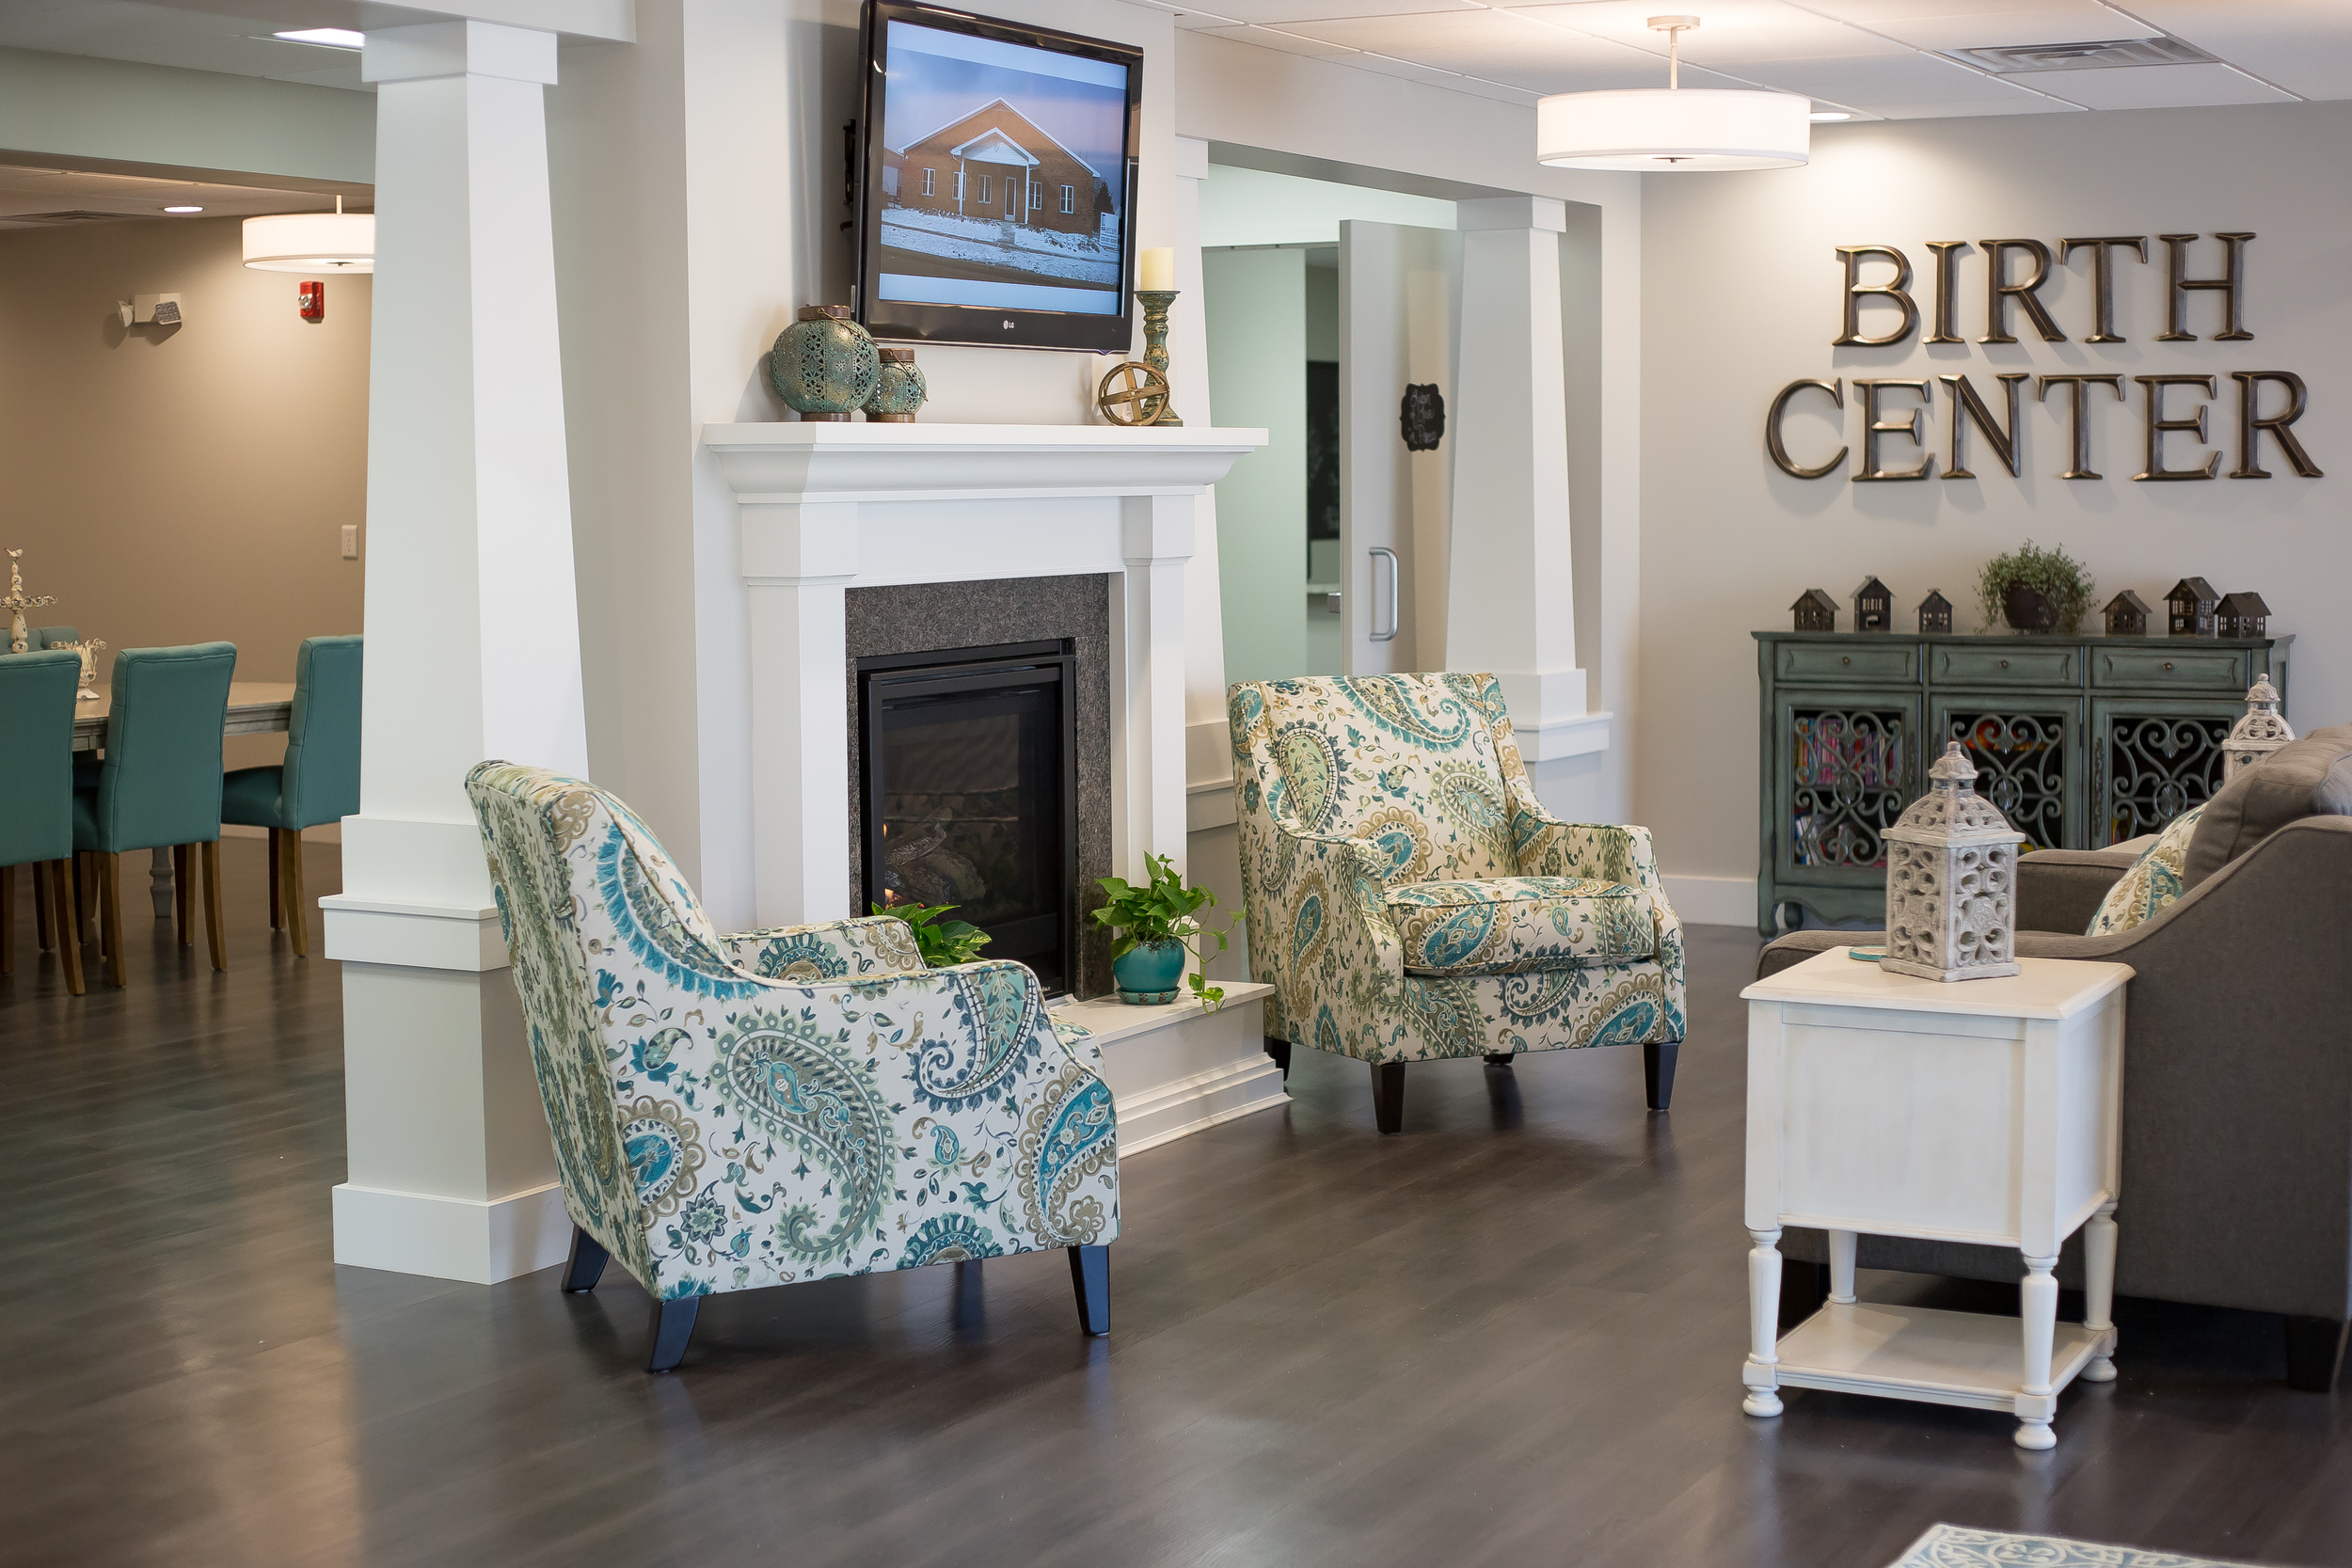 living room center bloomington in decorating ideas for with dark brown couch normal birth jessica worland